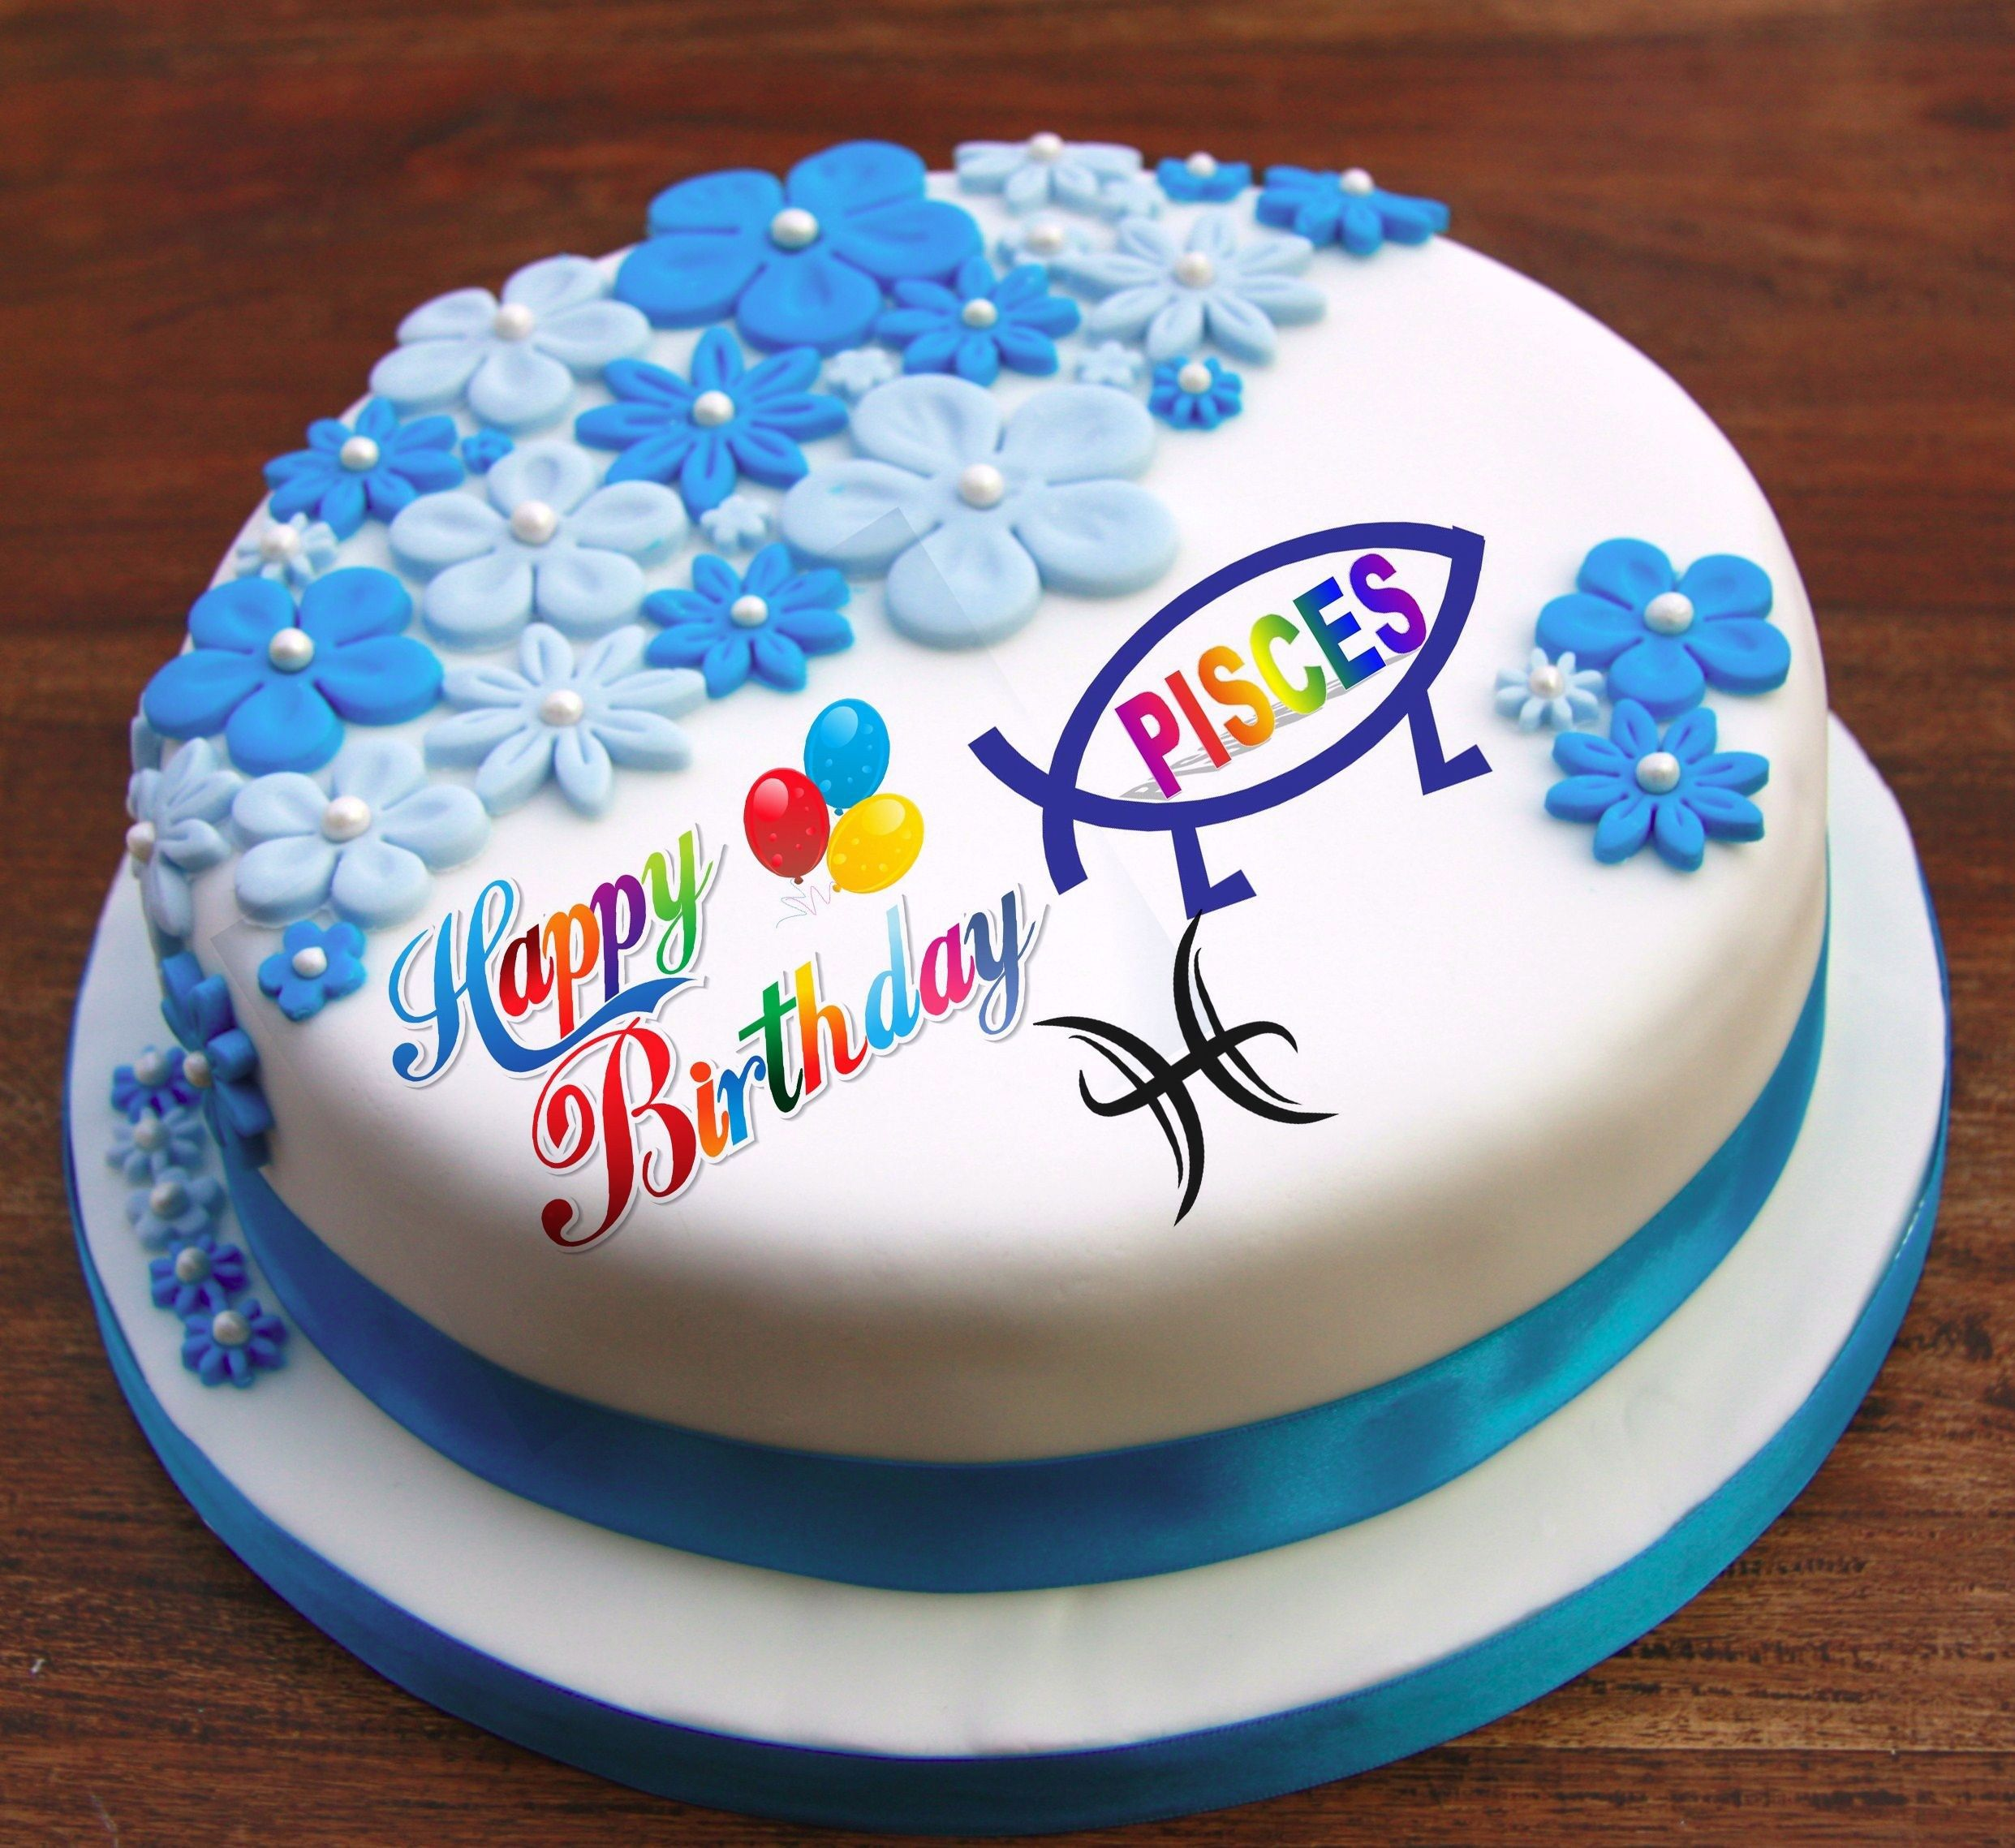 23 Awesome Image Of Birthday Cake With Name Birthday Cake With